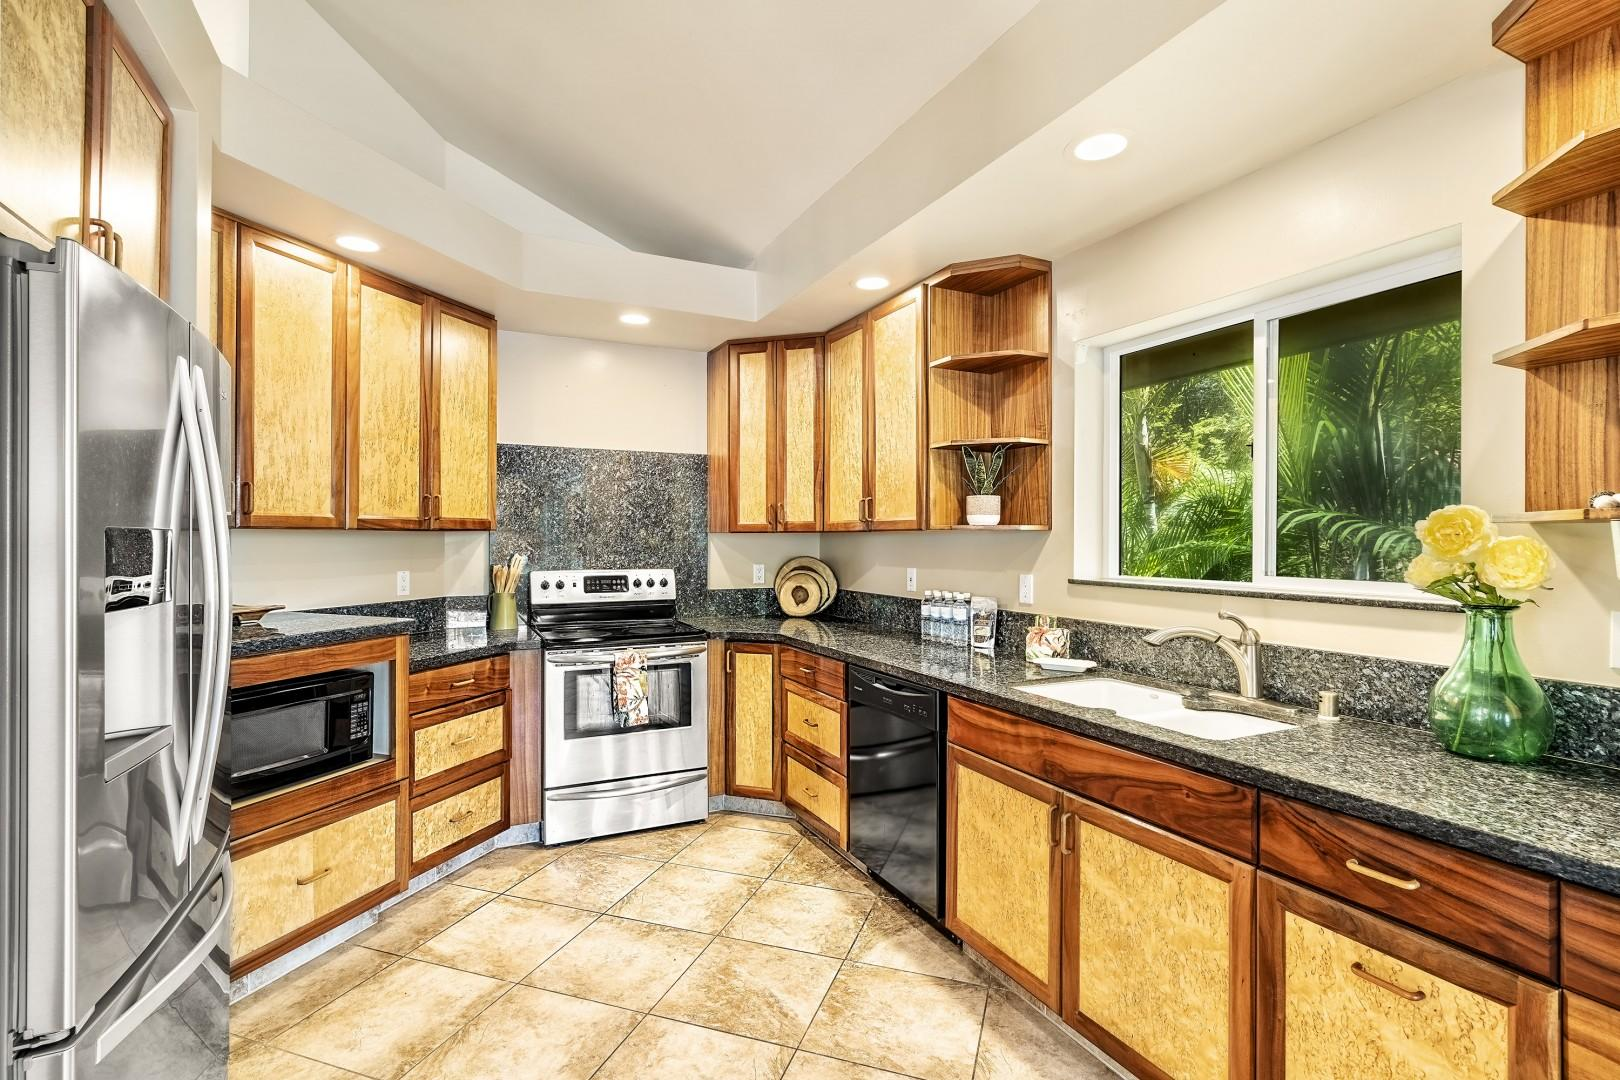 Upgraded kitchen for all your meal preparation needs